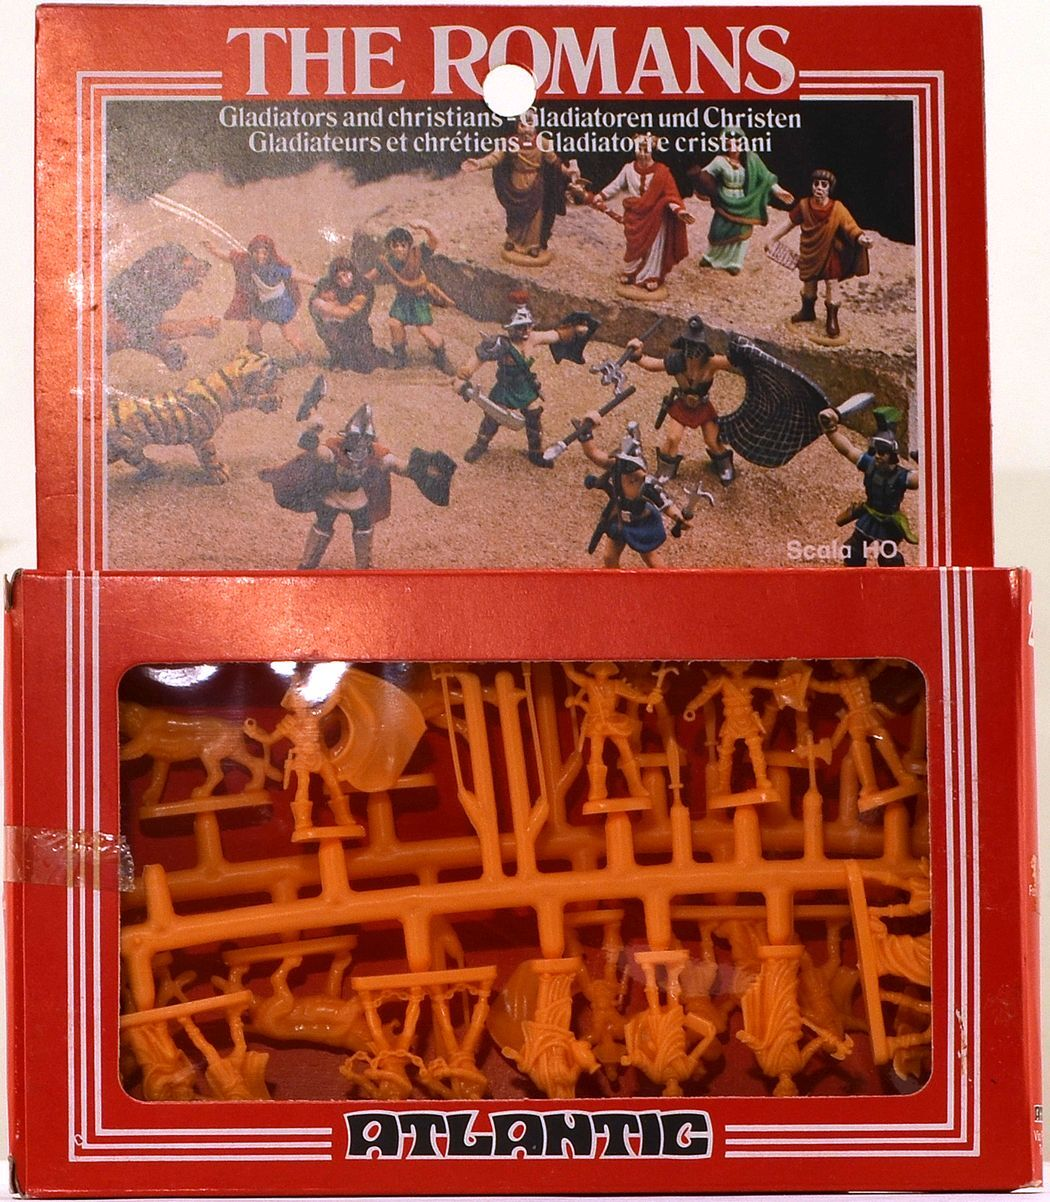 Atlantic Roman Gladiators and Christians - set 2512 - mint-in-box - 1 72nd scale